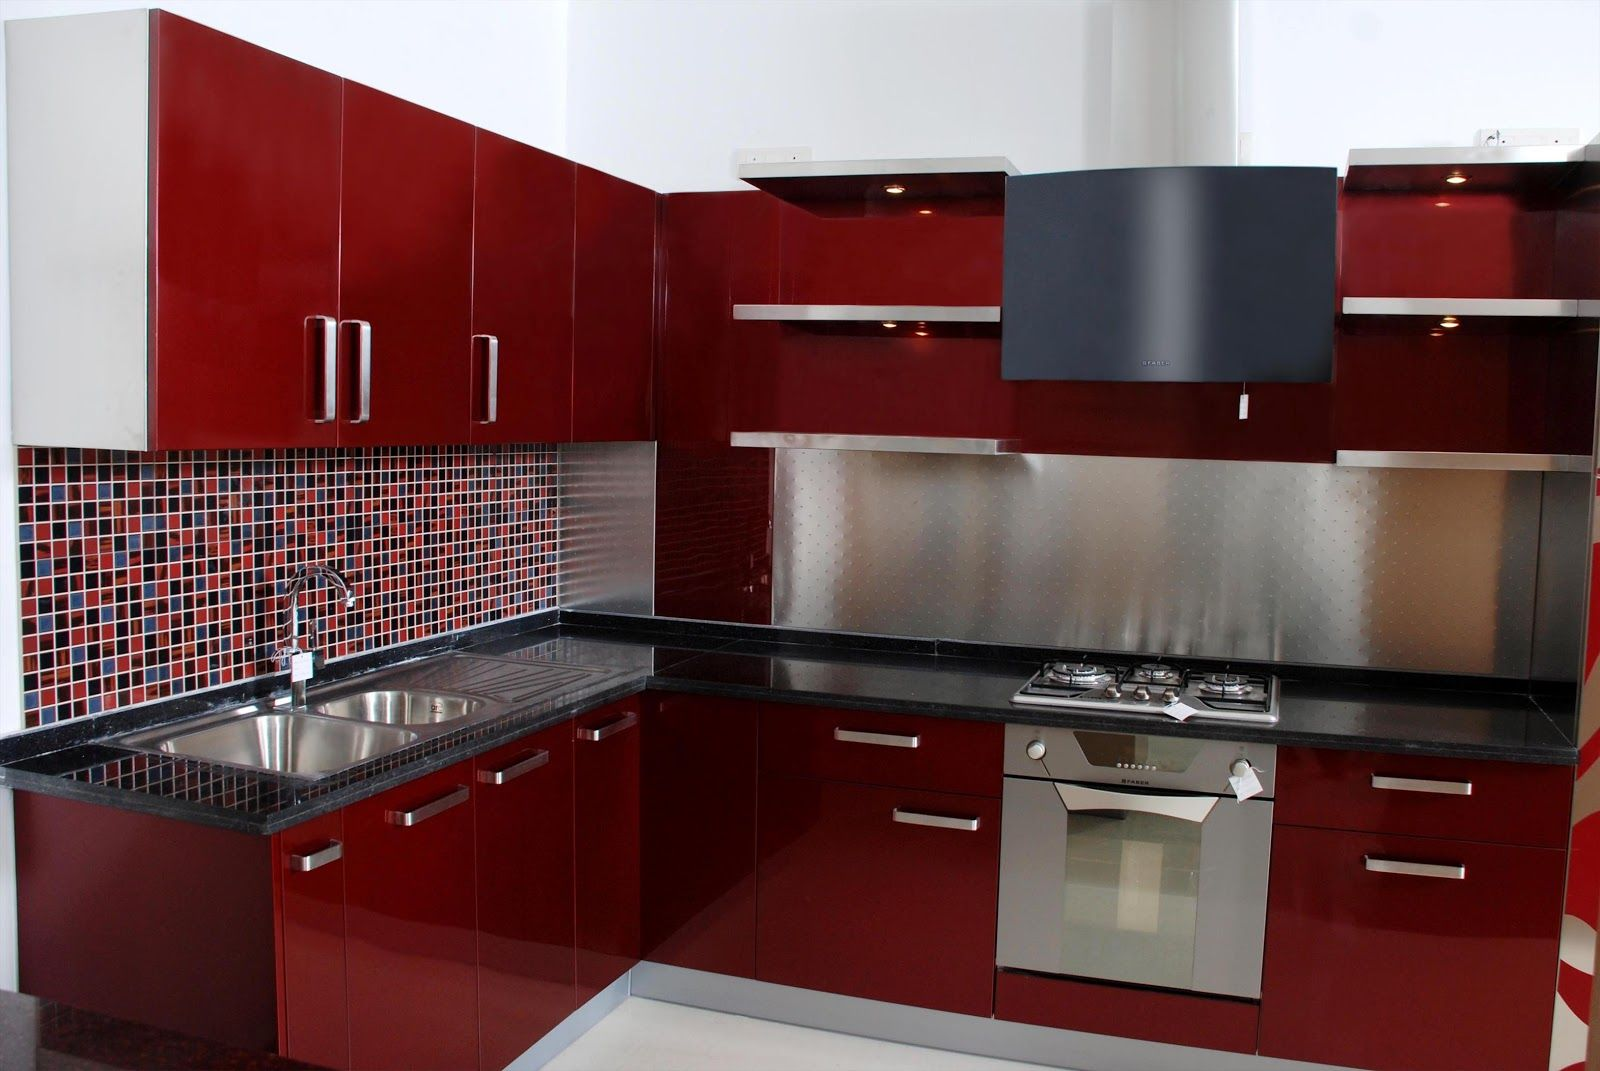 Parallel kitchen design india google search kitchen for India kitchen designs